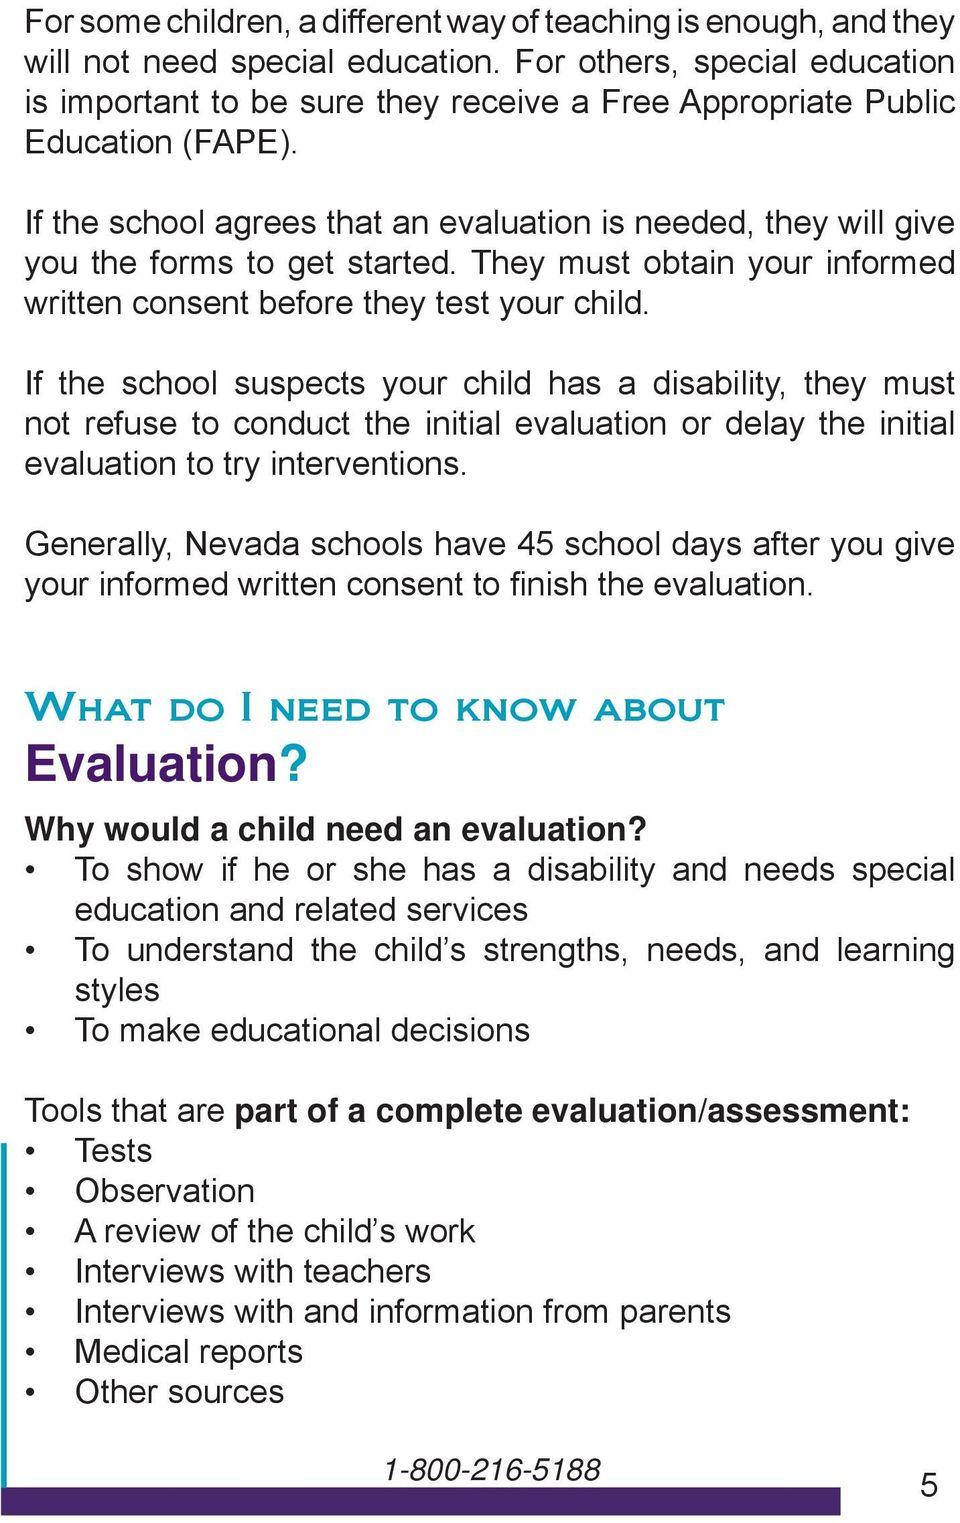 If the school agrees that an evaluation is needed, they will give you the forms to get started. They must obtain your informed written consent before they test your child.